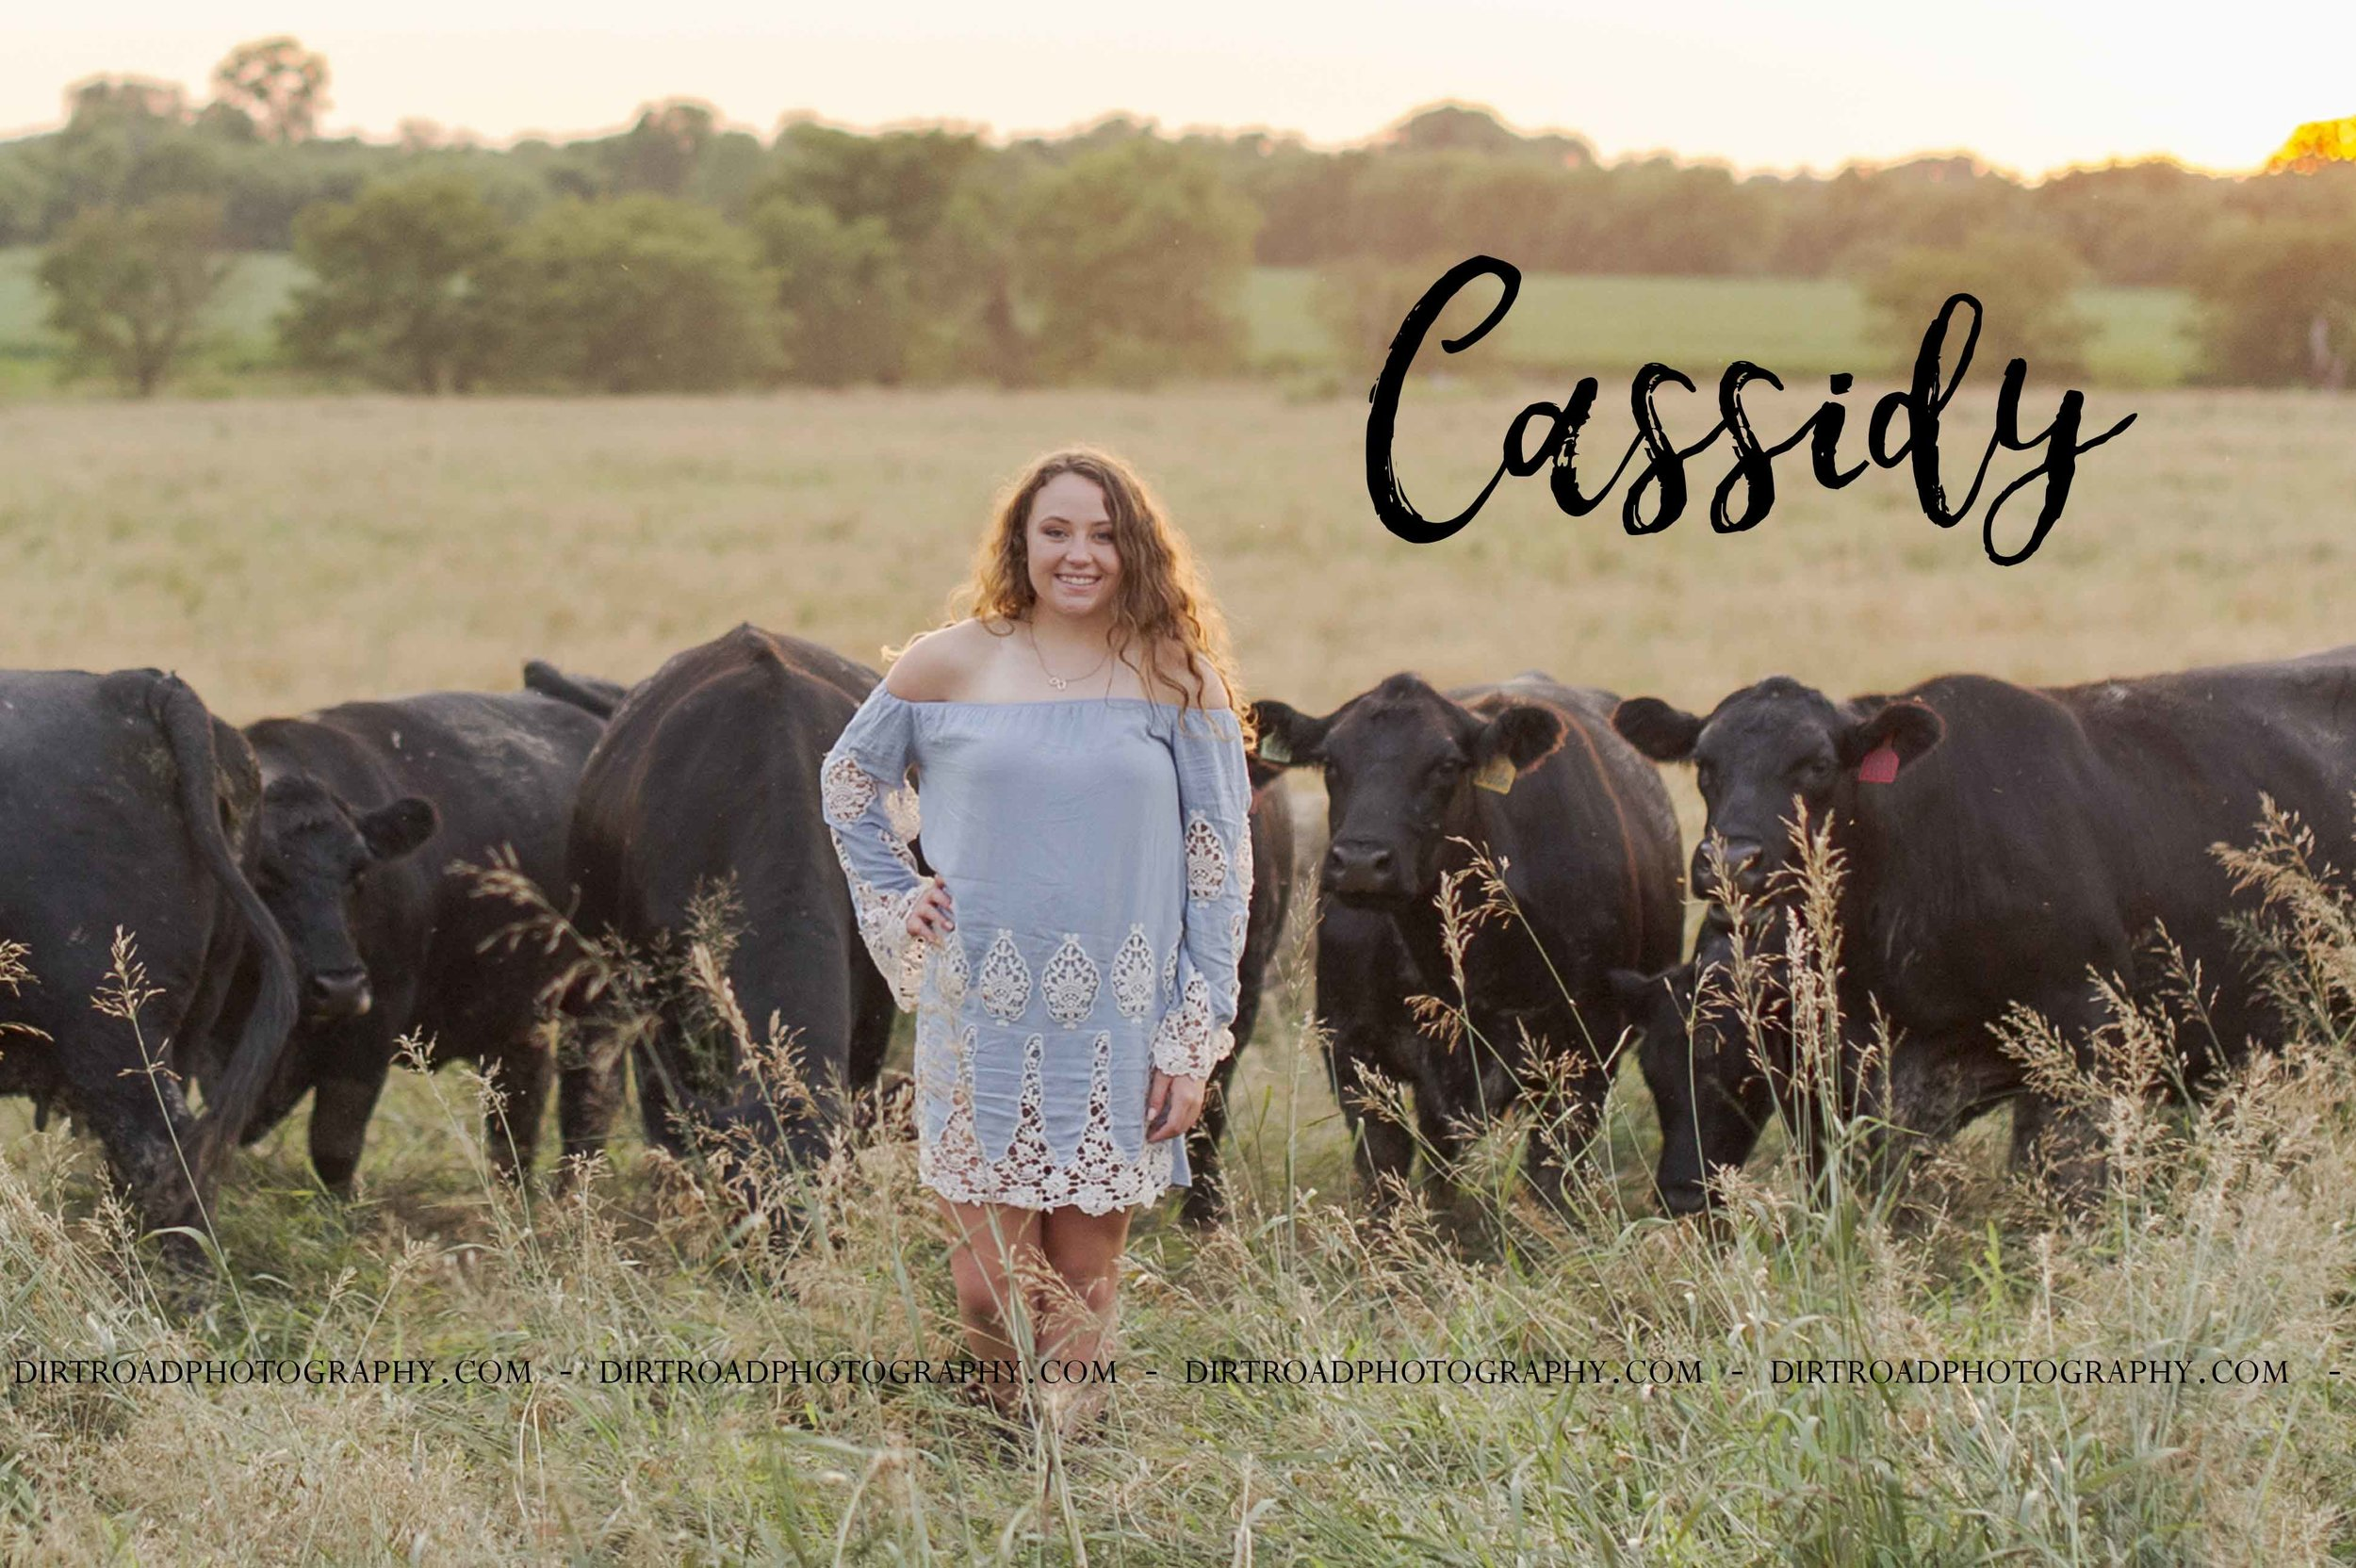 images of high school girl senior photos named cassidy kowalski of wilber nebraska who went to tri-county high school in dewitt nebraska and is part of the class of 2020. photos were taken near wilber nebraska in saline county at farms. photo includes tall glass buildings, cattle, show cows, blue dresses, summer, sunsets, and dirt roads. cassidy is also wearing pink tank top with blue denim jeans as well as floral off the shoulder dress and sandals. girl is dressed in brown cowboy boots with blue lace dress with long brown curly hair and styled make-up. dirt road surrounded by trees and dust at sunset. tall grass with a sunset behind as well. photographer is kelsey homolka nerud of wilber nebraska who specializes in high school senior photography and senior pictures.